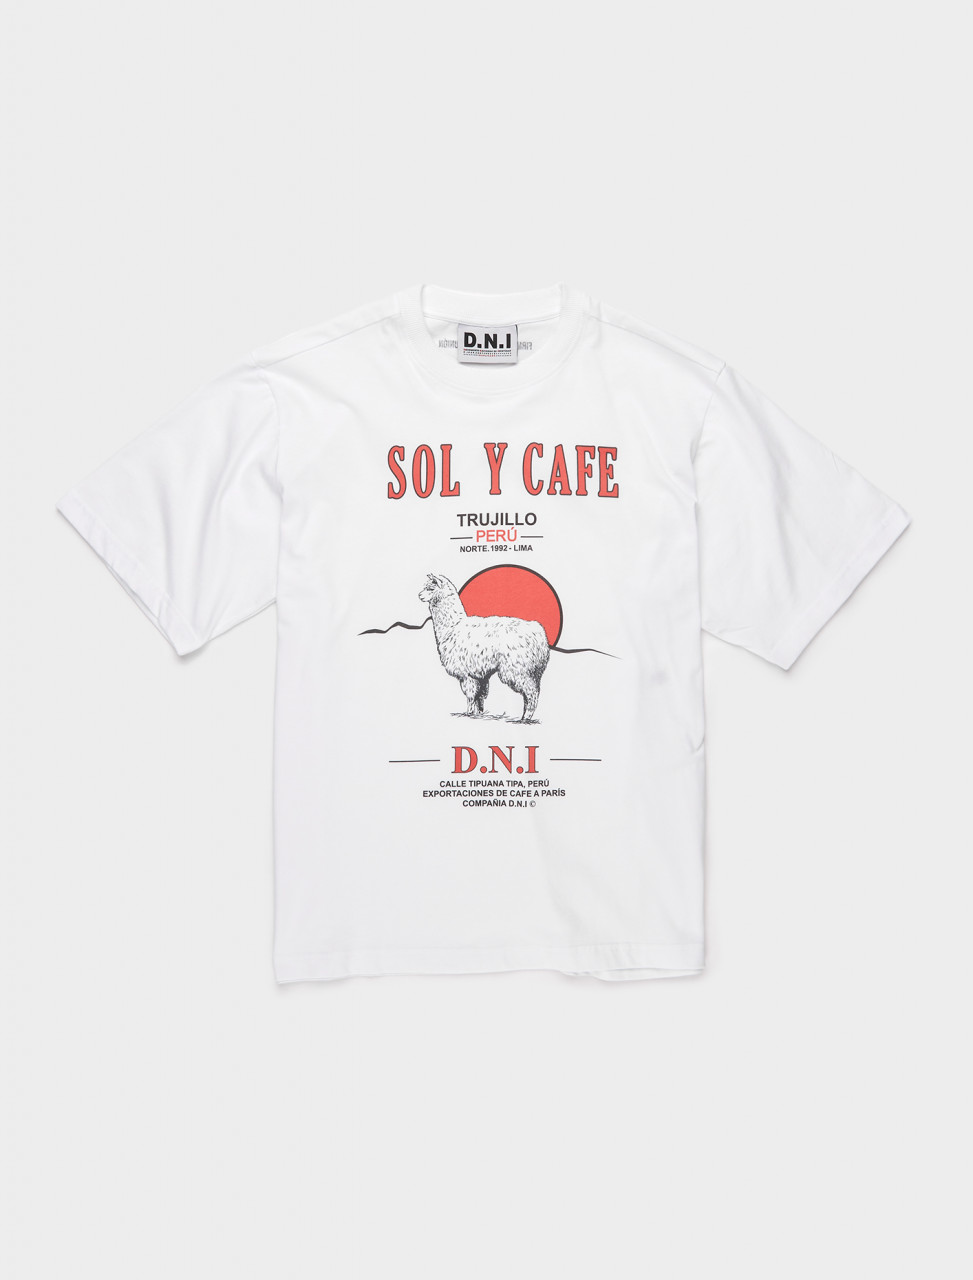 354-T01INT D.N.I SOL Y CAFE T SHIRT